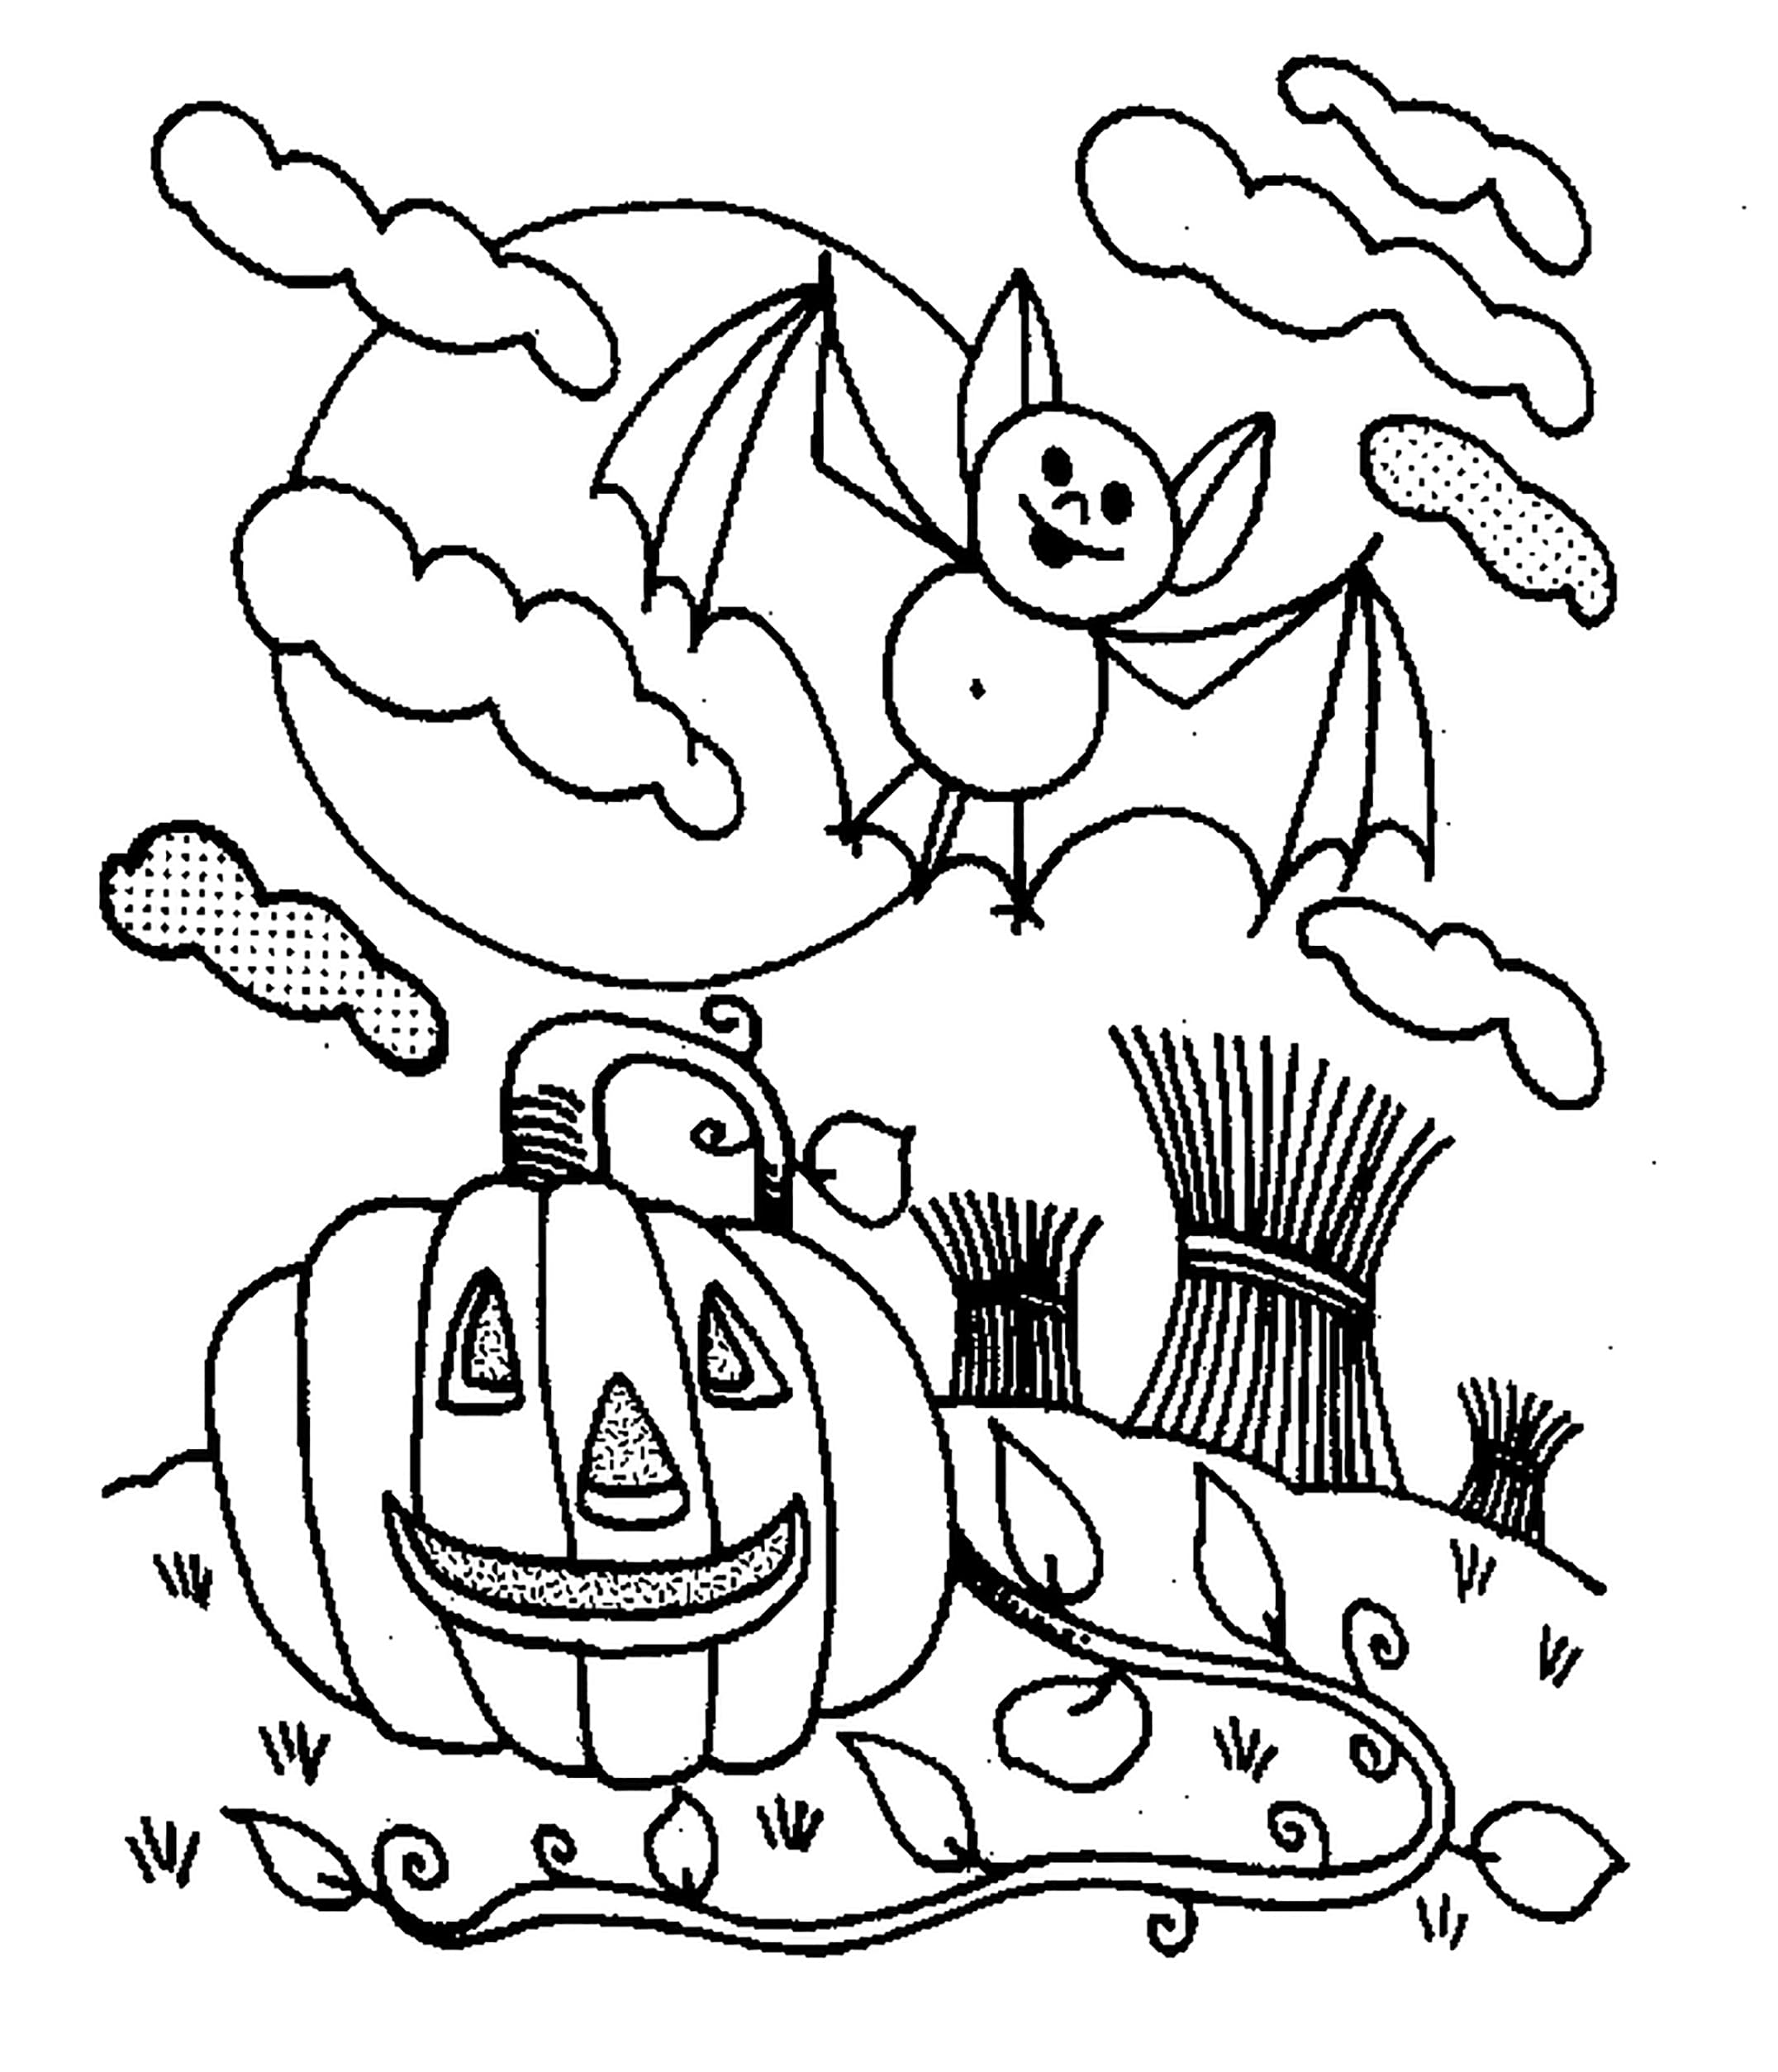 halloween color pages halloween coloring pages to download and print for free halloween pages color